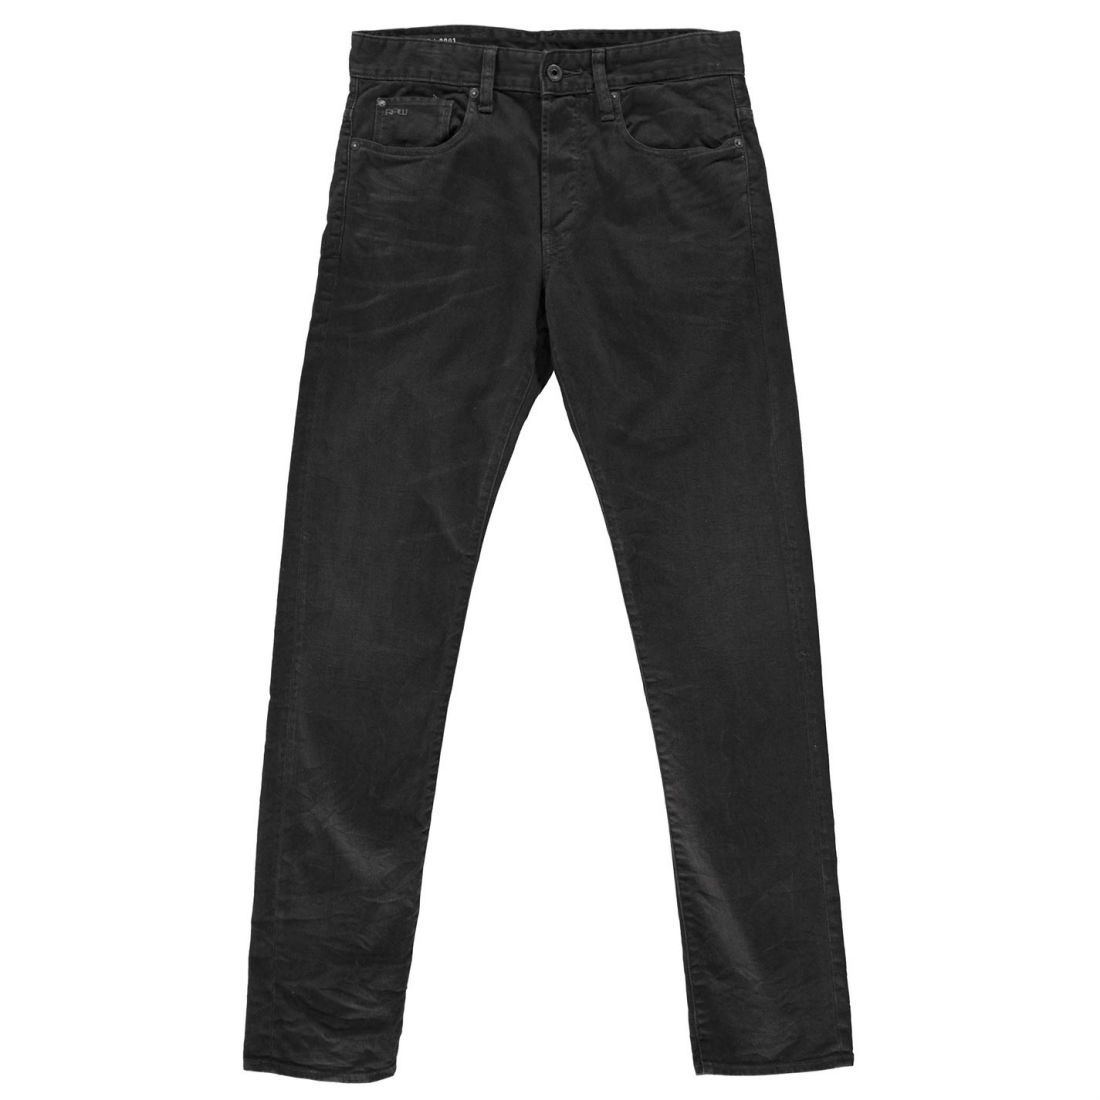 c10f8d1a G Star Mens 3301 Tapered Coj Jeans Straight Pants Trousers Bottoms Cotton  Tonal